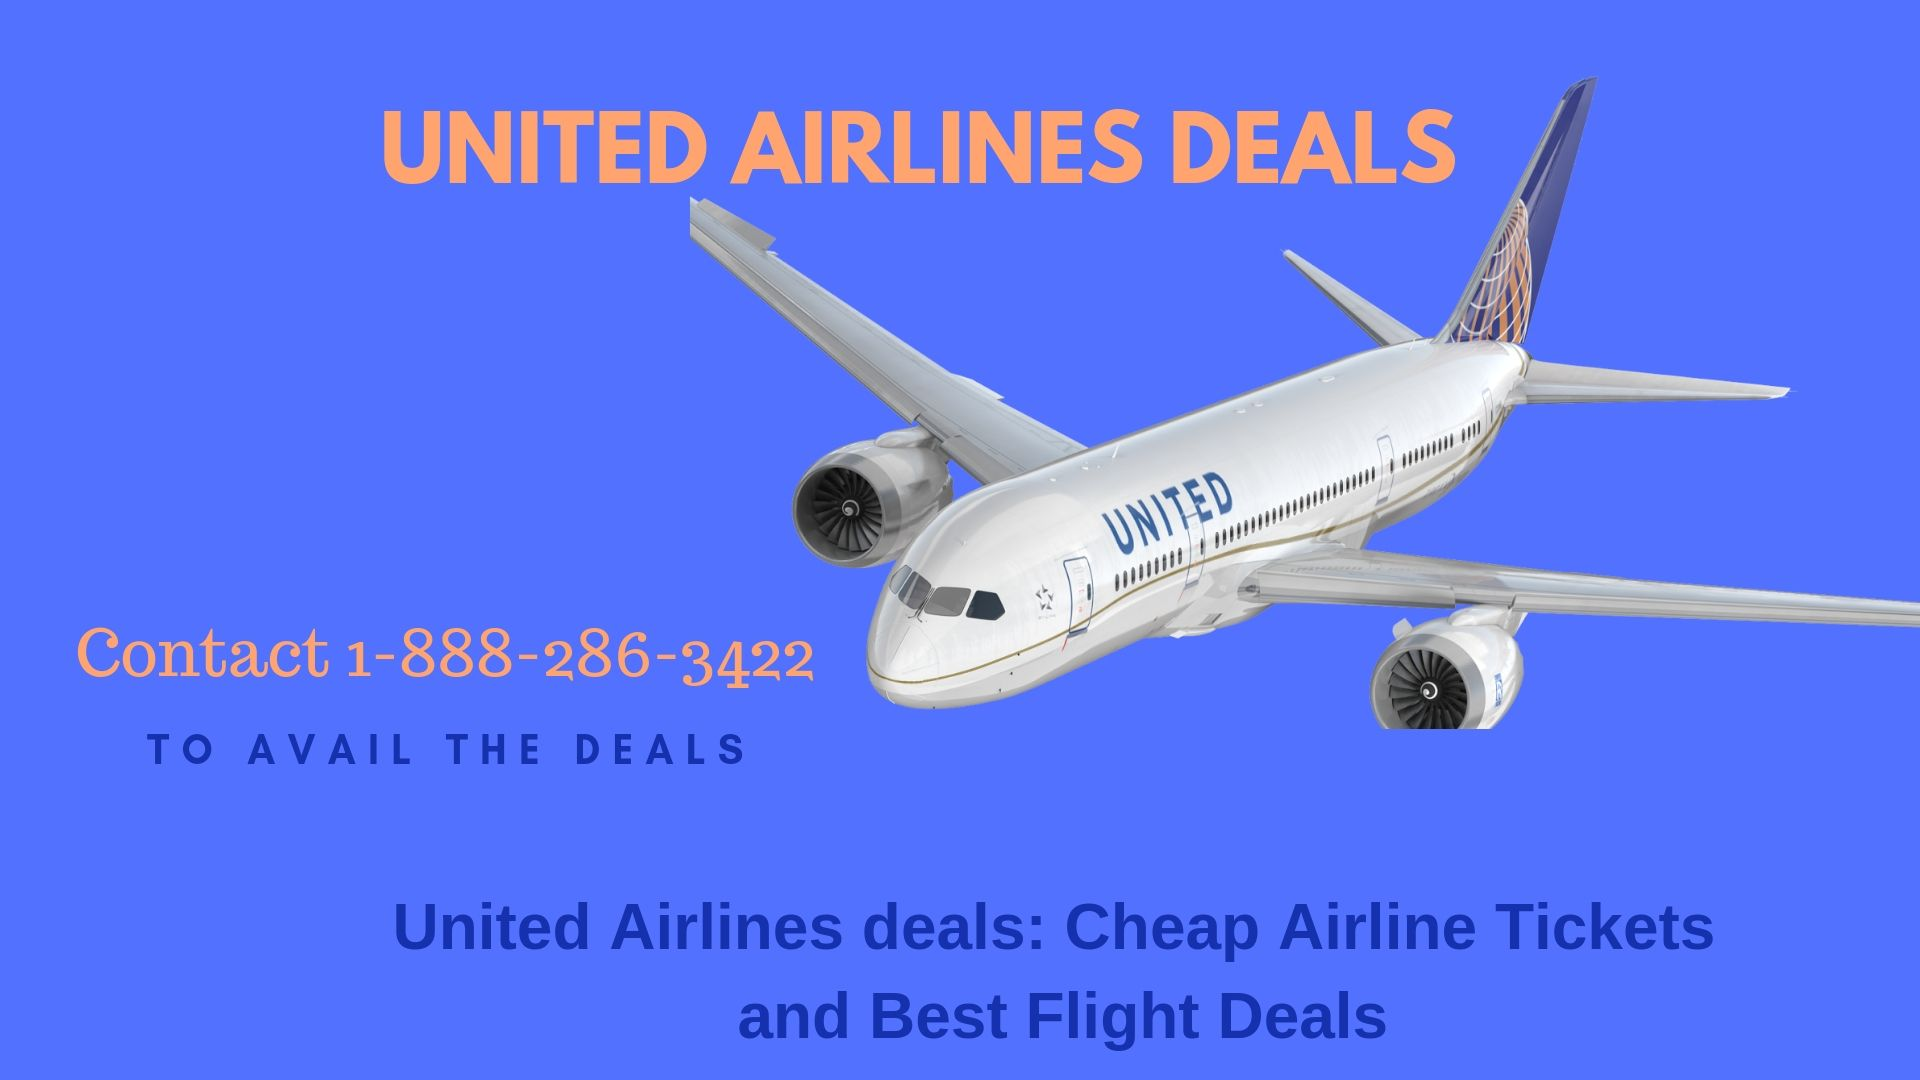 last minute airline deals united airlines